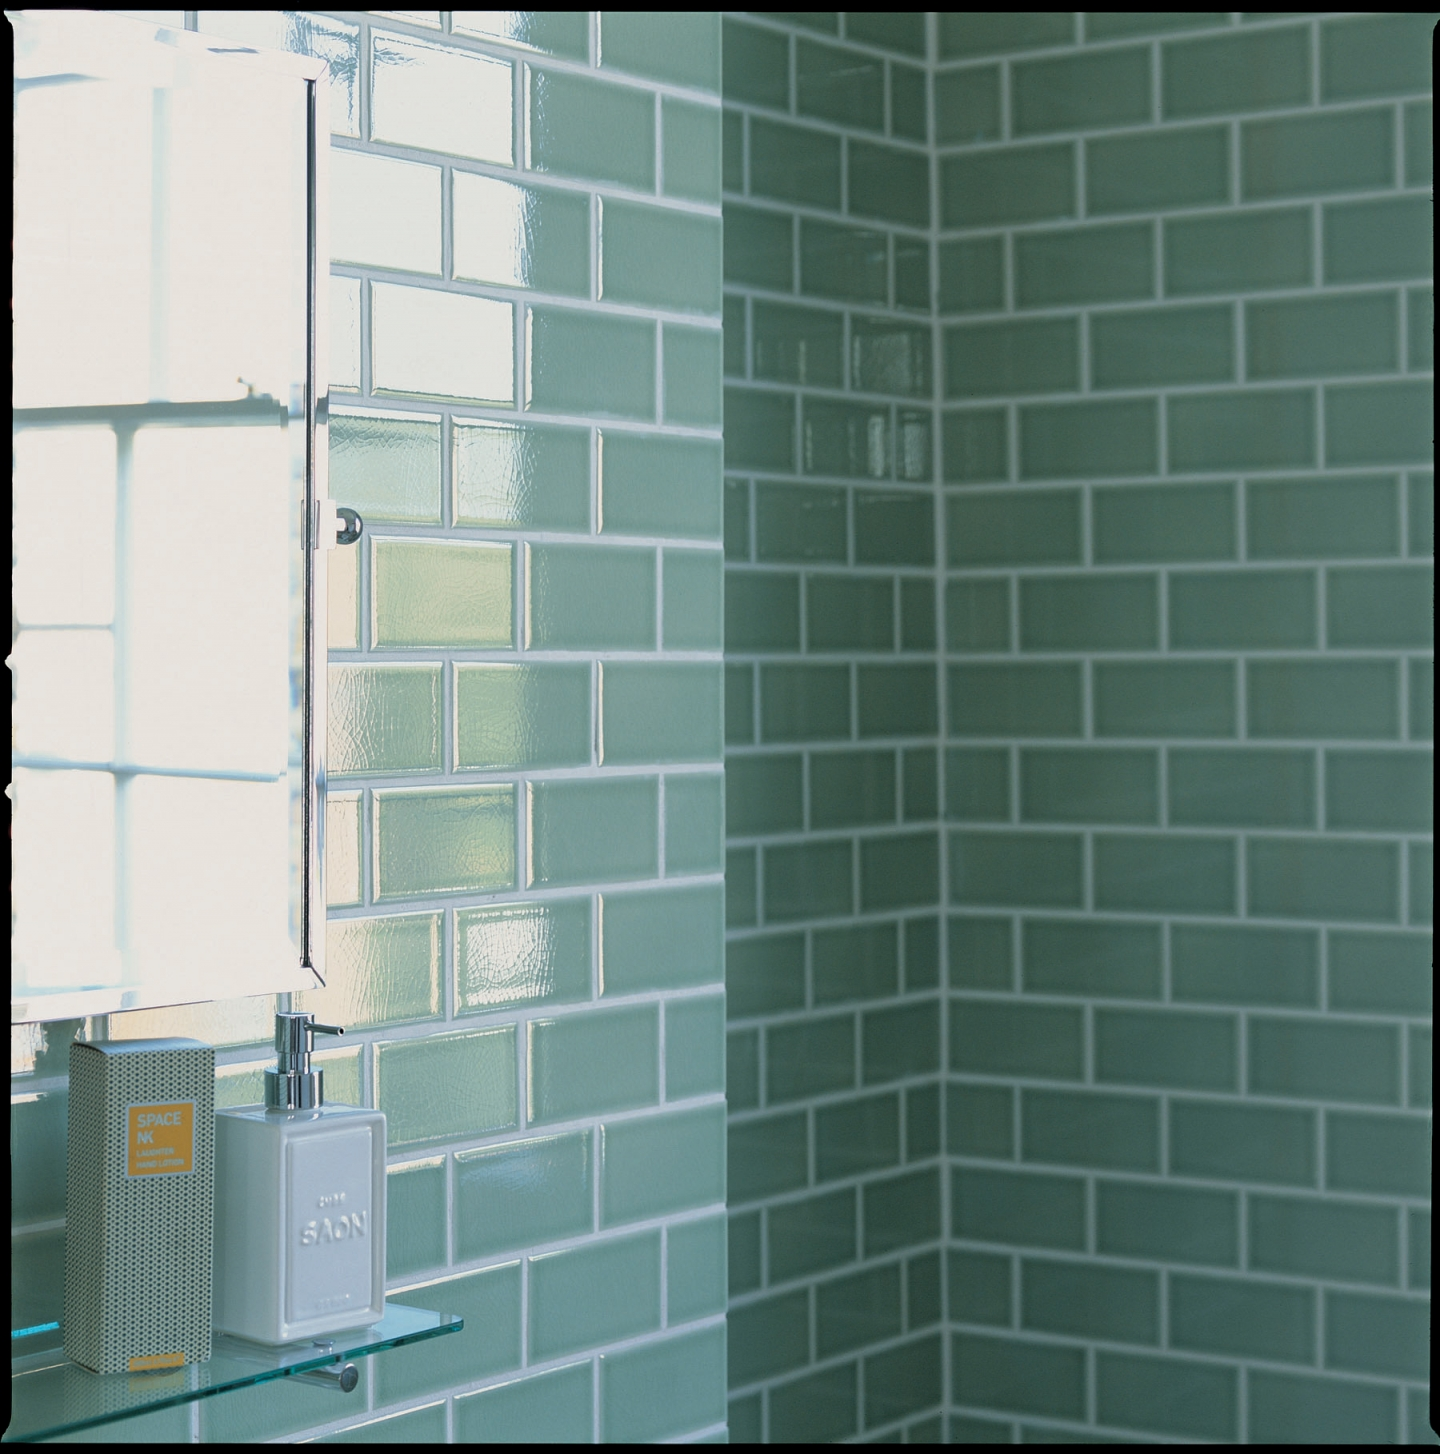 bathroom shower curtain ideas small shower ideas for small bathroom - Small Shower Design Ideas